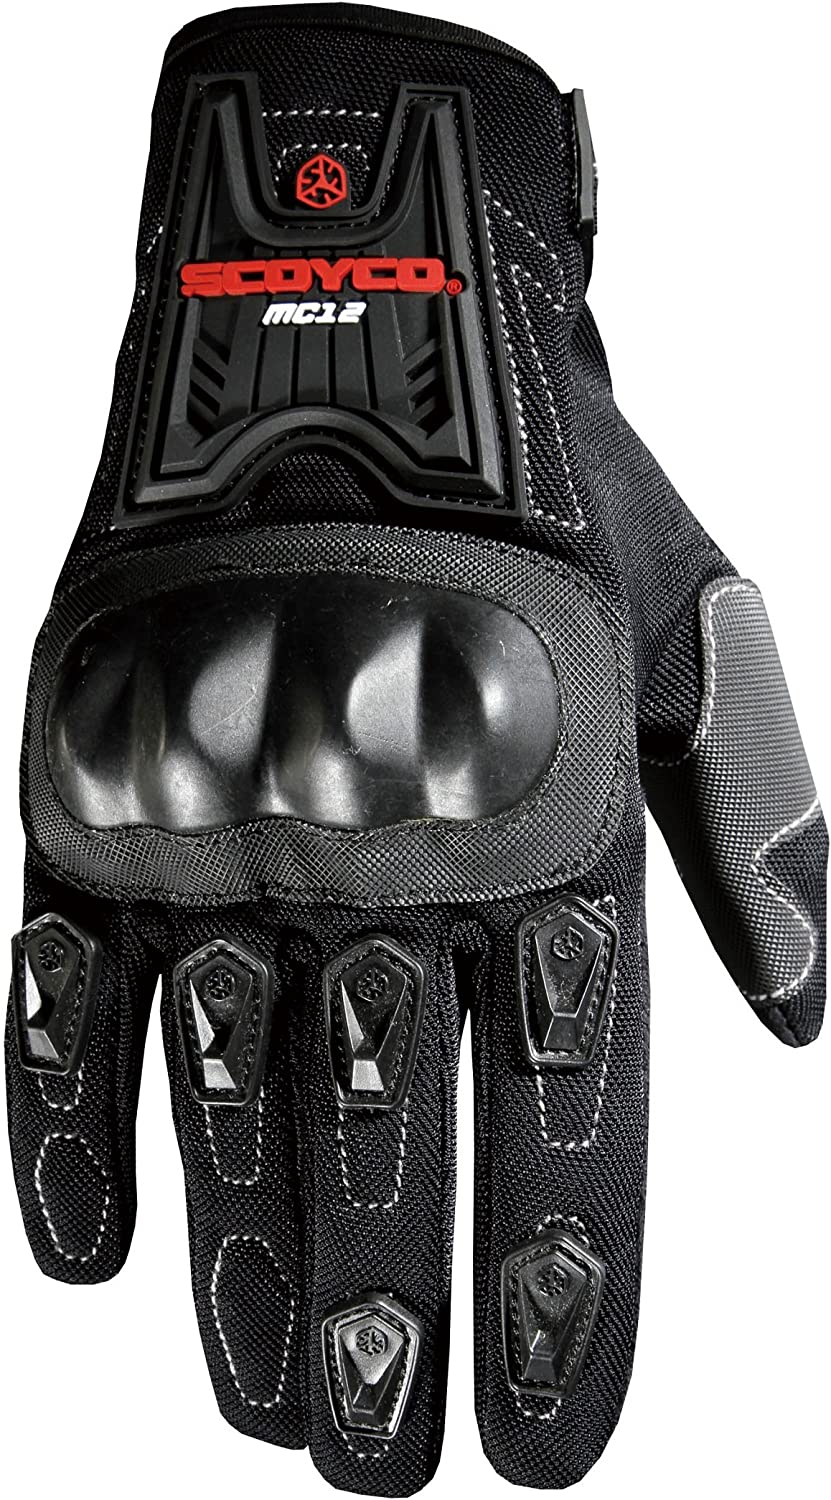 Motorcycle Gloves Full Finger Motorbike Bike Racing Sports Black Anti Skid